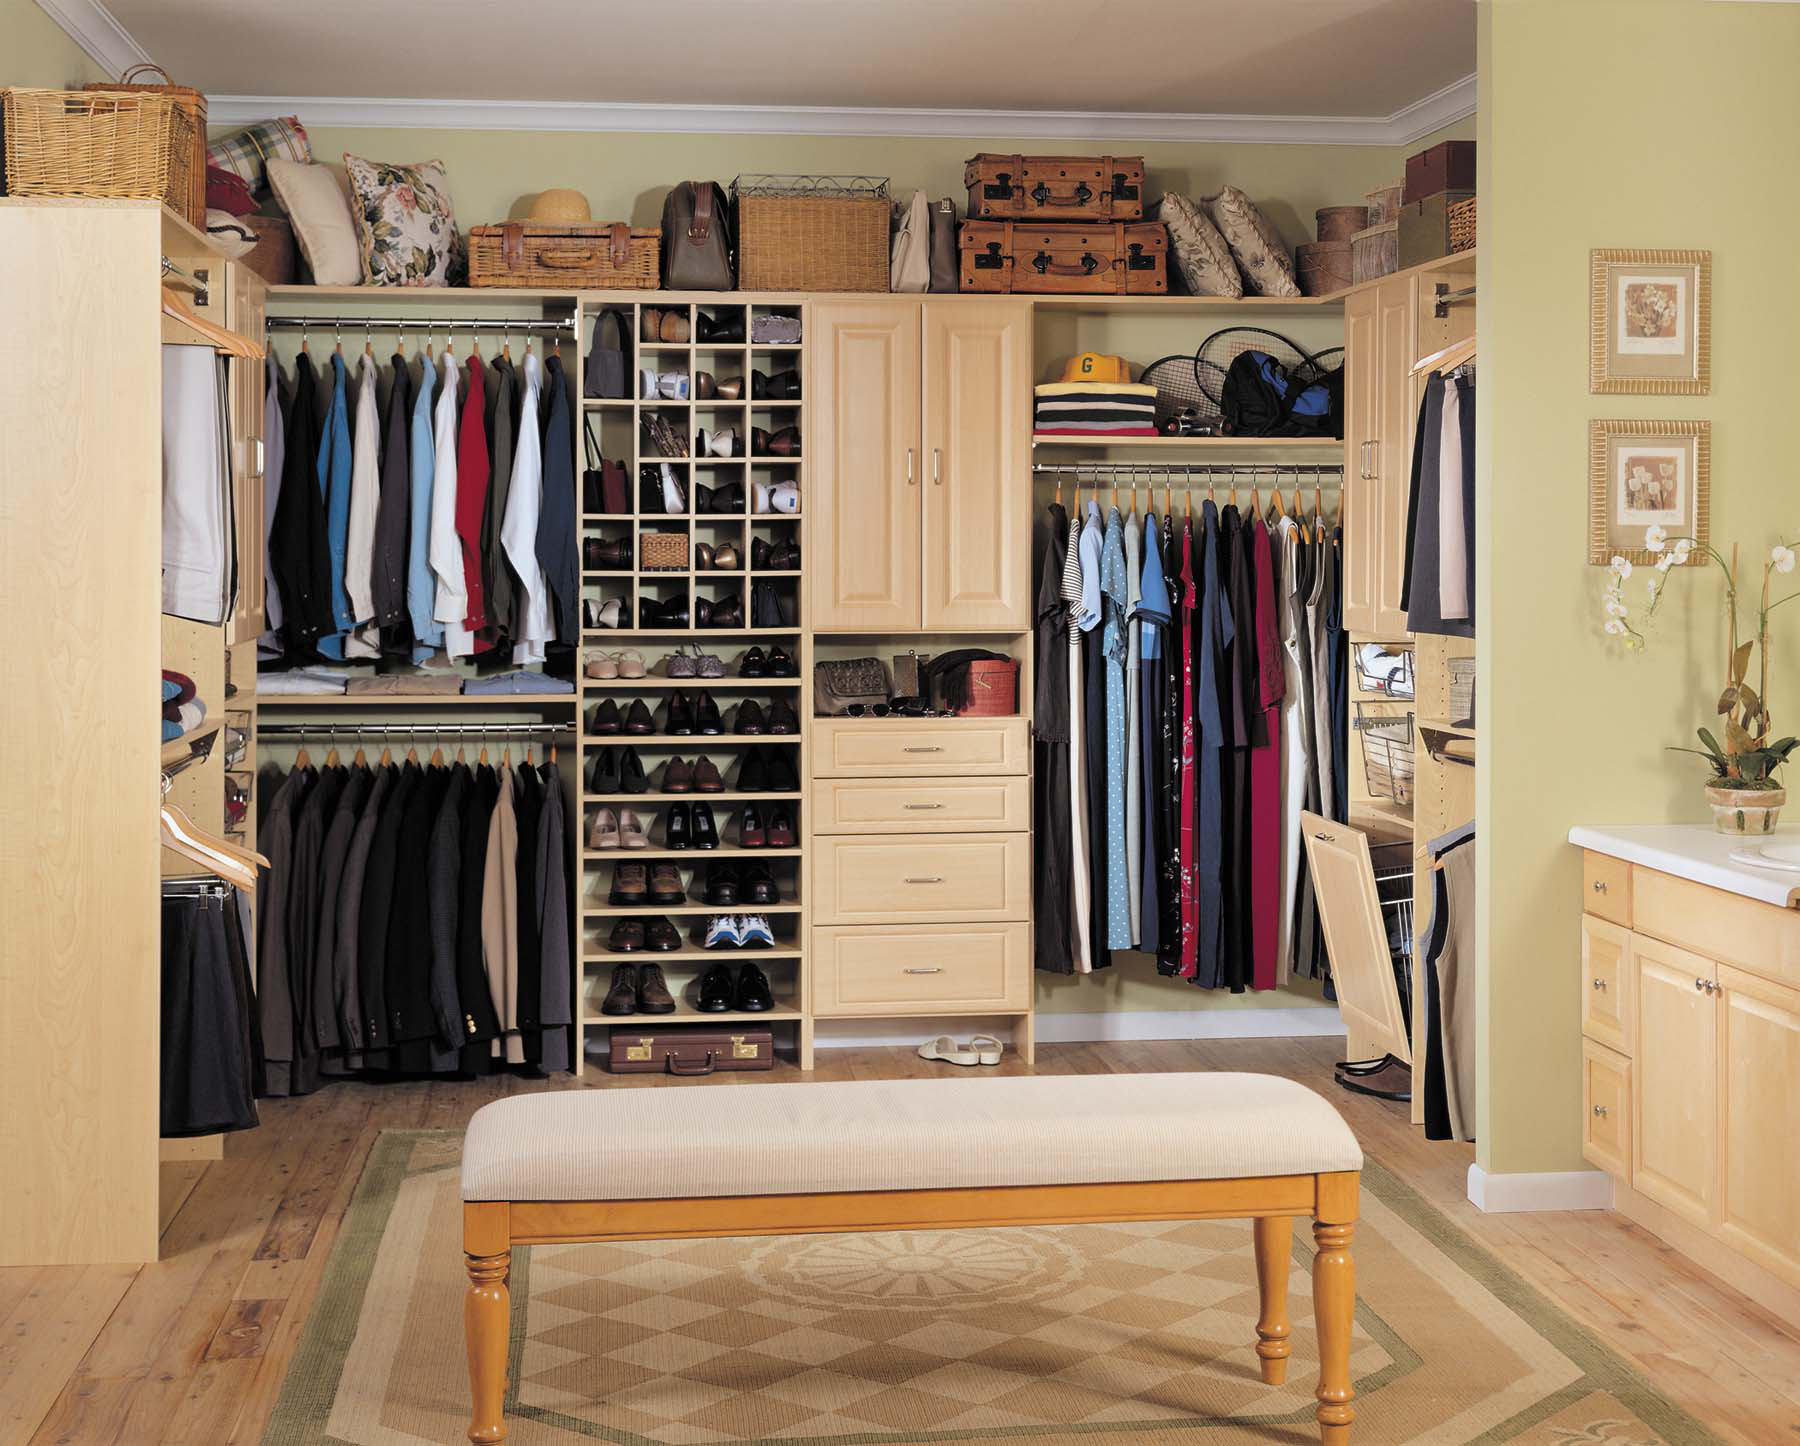 Closetmaid Design Ideas closet organization closetmaid design ideas Closetmaid Gallery Advanced Closet Systems